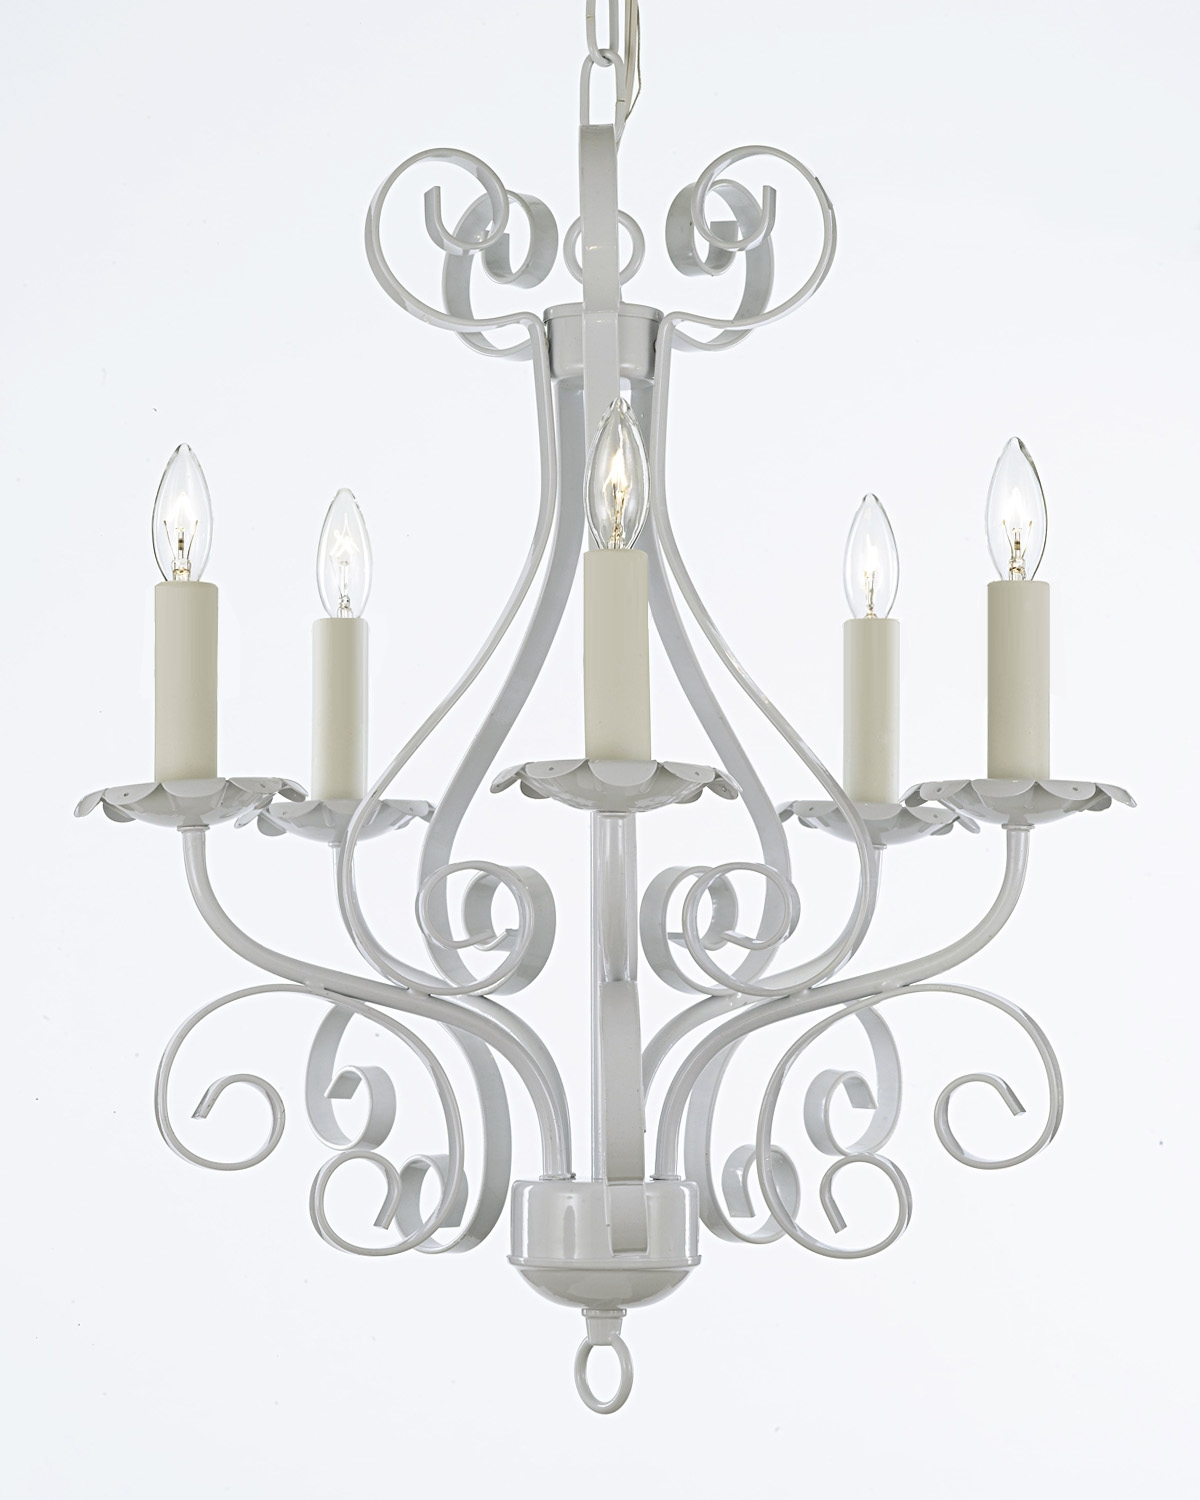 Gallery Regarding White And Crystal Chandeliers (Image 18 of 25)